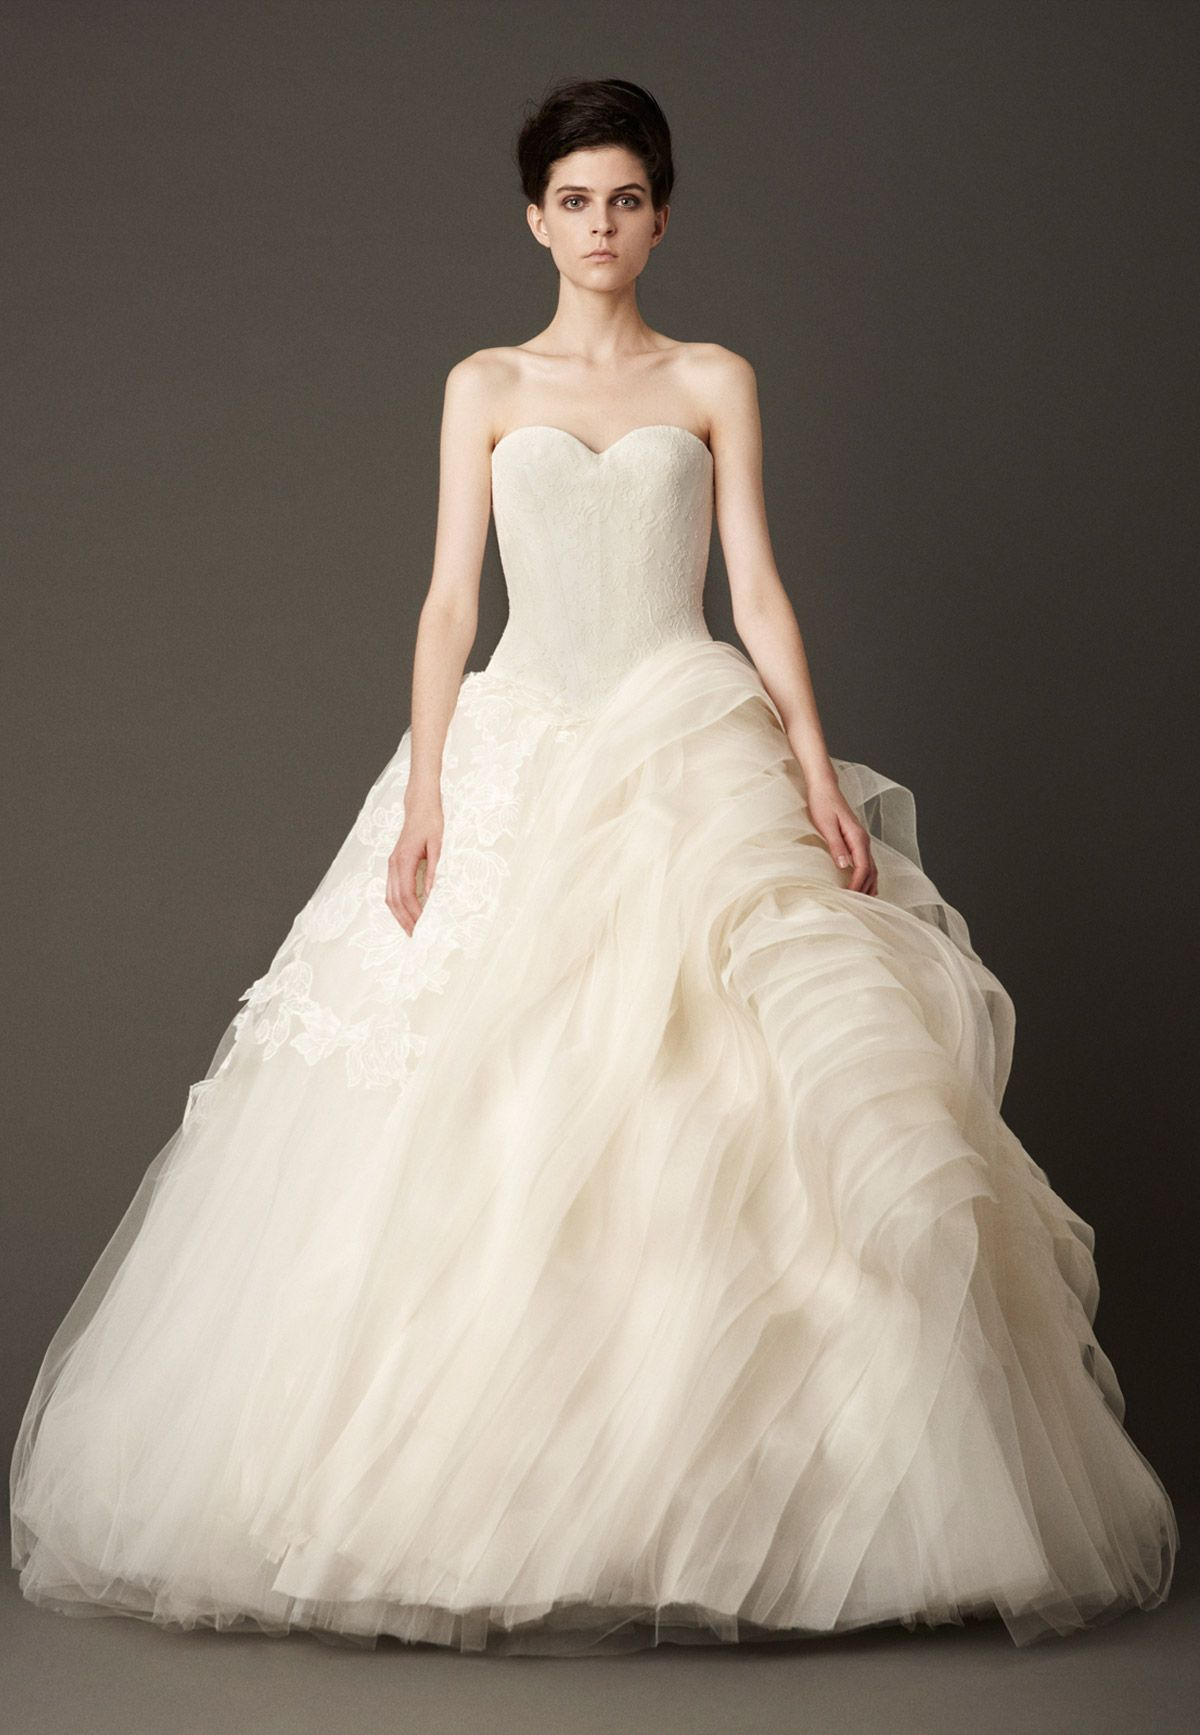 Vera wang wedding dress rental  VERA WANG COUNTRY UNITED STATES OF AMERICA LANGUAGE ENGLISH SIGN